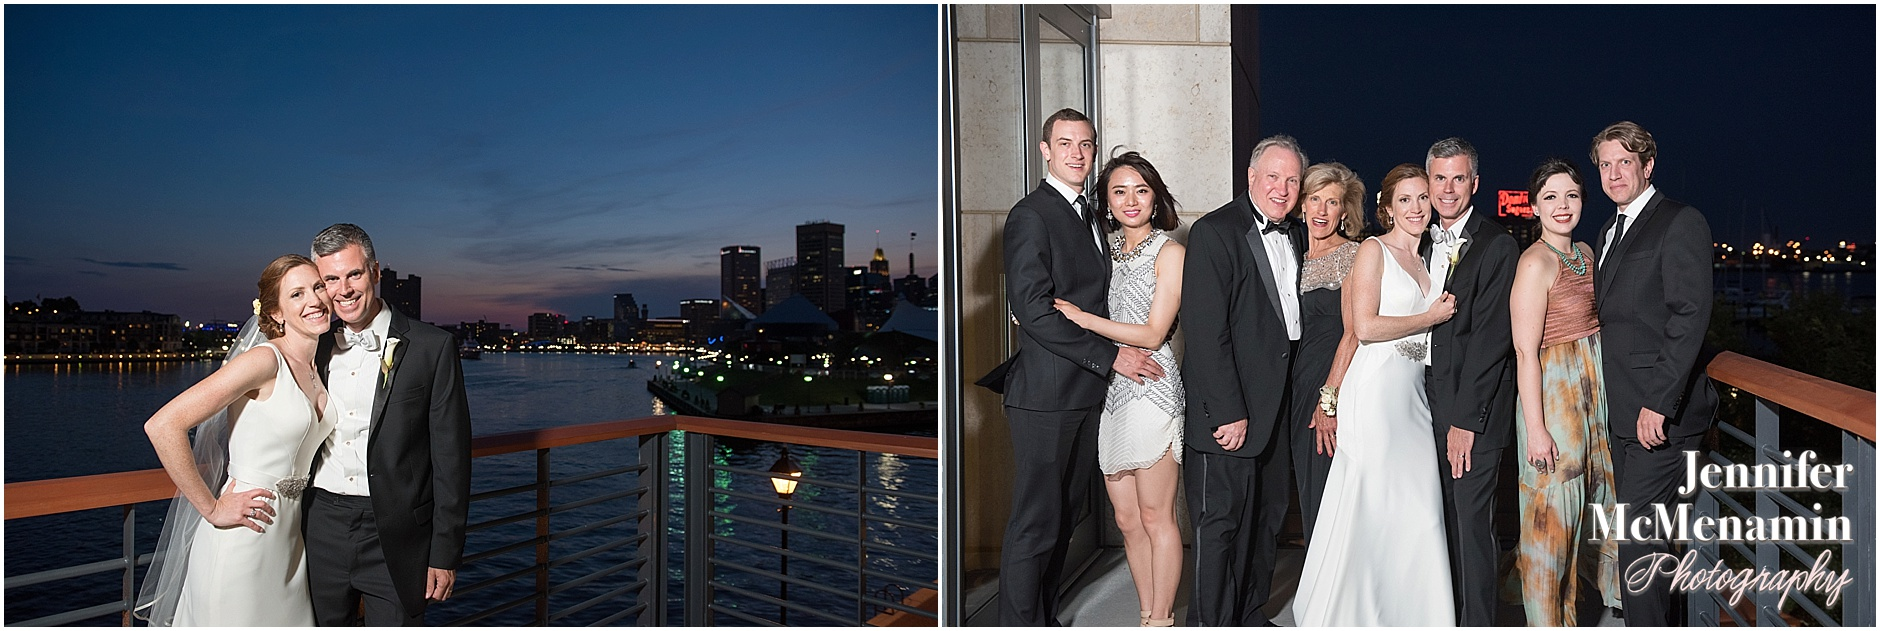 067-Four-Seasons-Baltimore-wedding-Jennifer-McMenamin-Photography